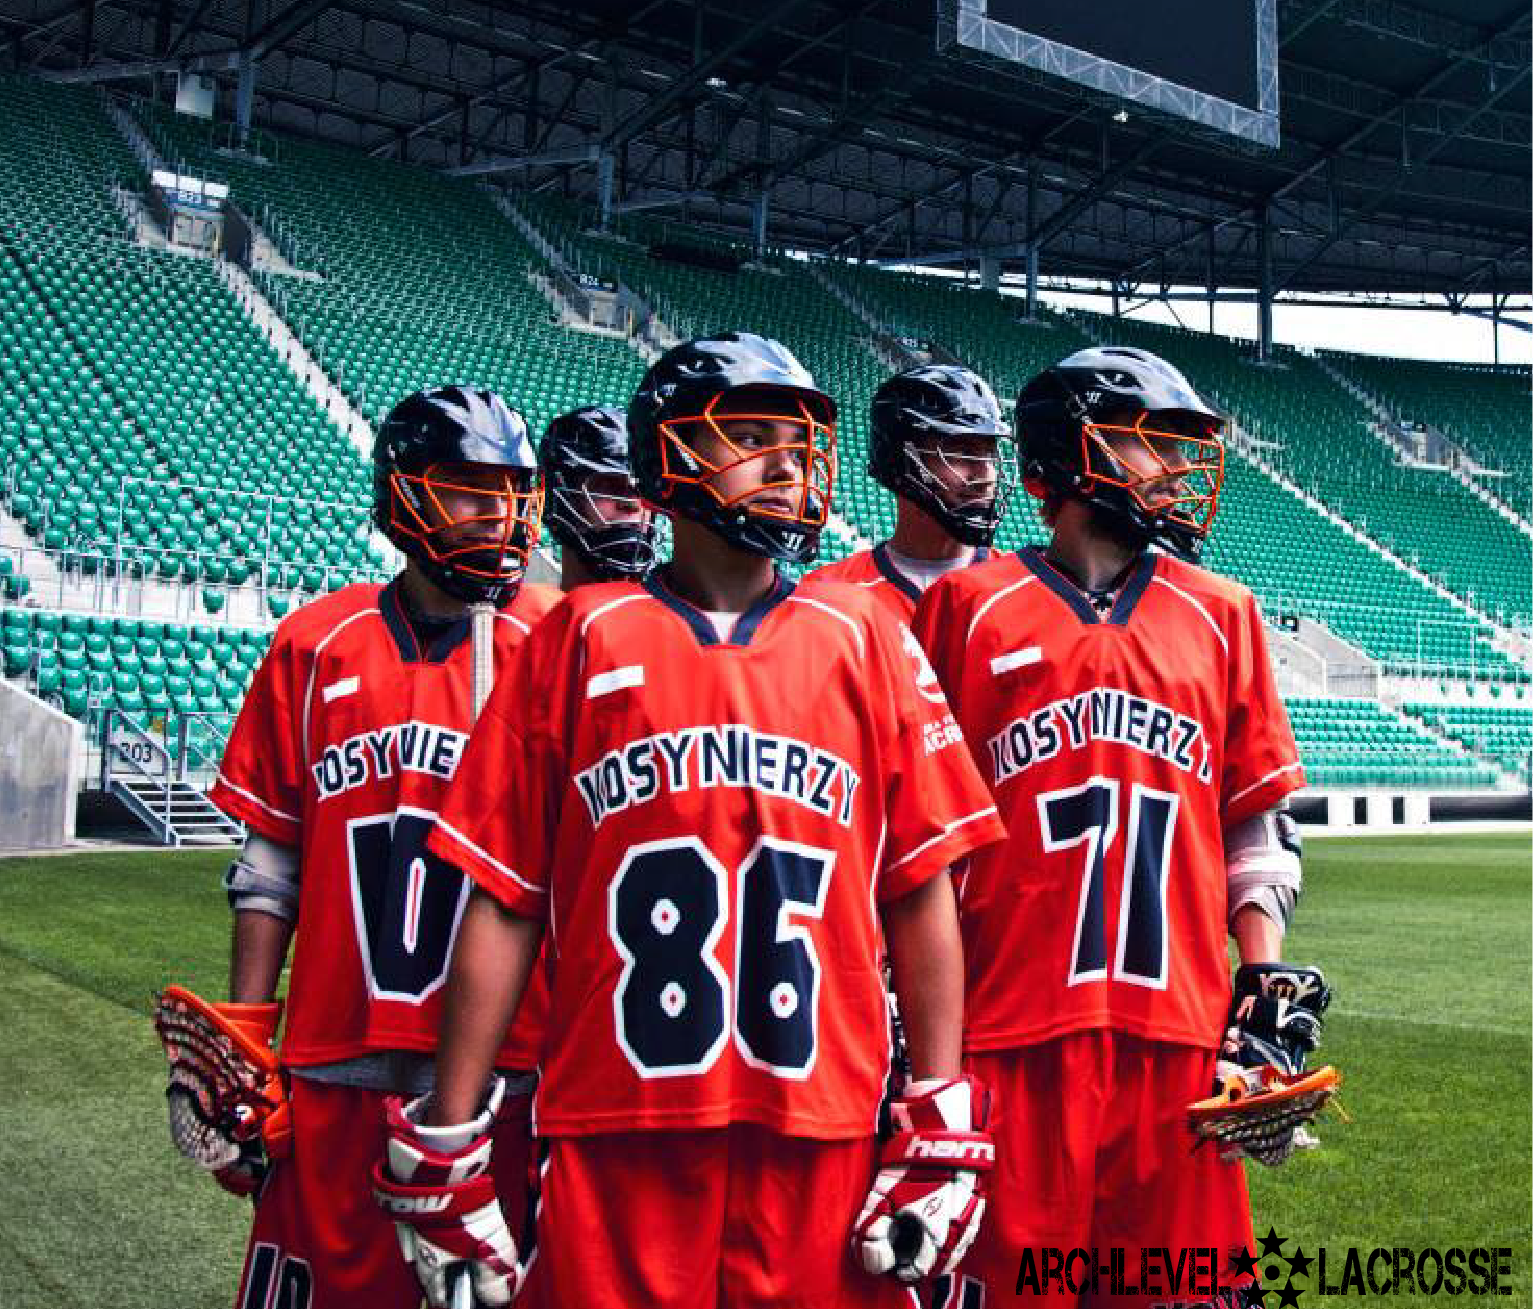 Wroclaw Lacrosse Uniforms ArchLevel